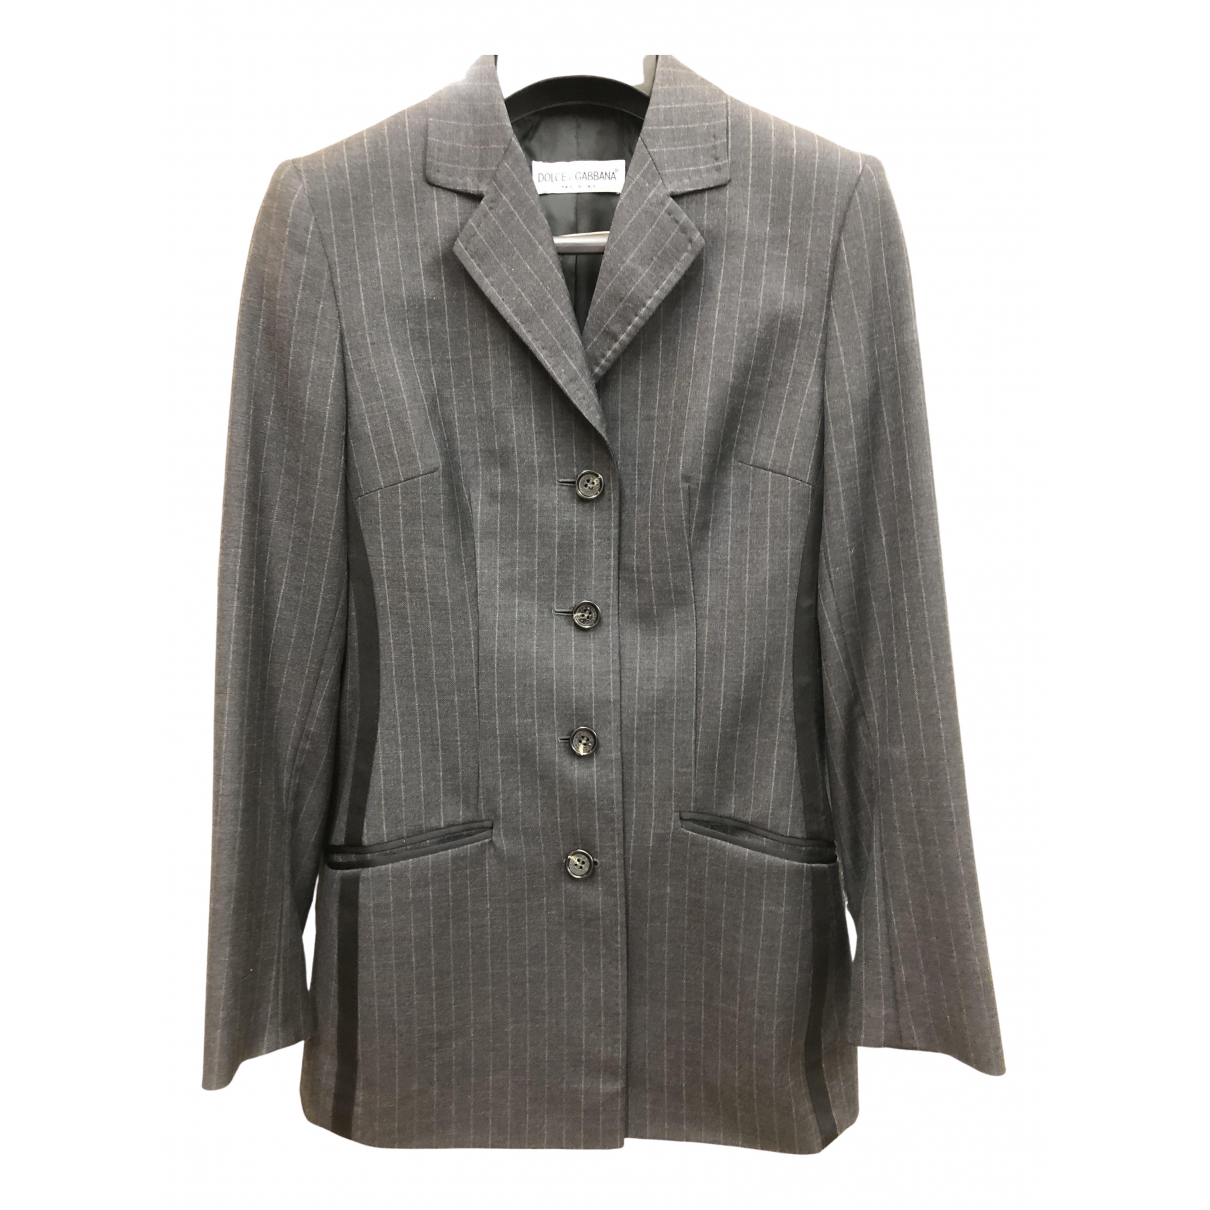 Dolce & Gabbana \N Grey Wool jacket for Women 38 IT